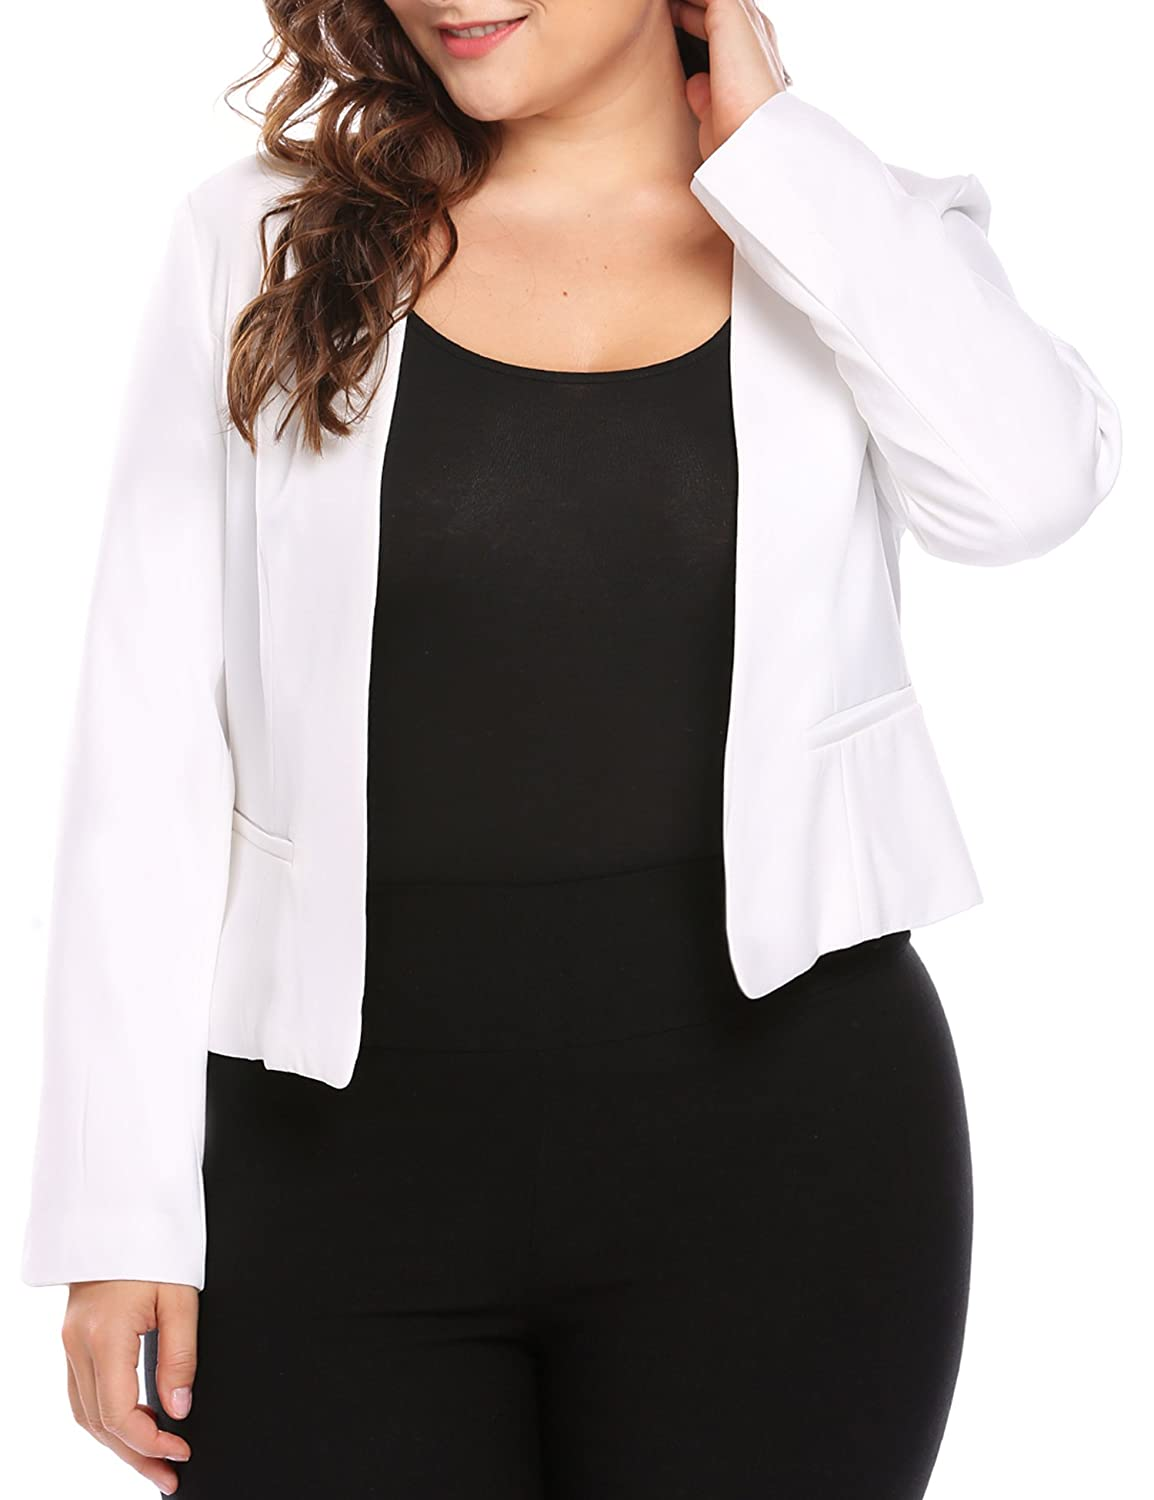 fb14ea43 Open Front Blazer Jacket Design : Elegant and Slimming, Full Lining,  Princess Line, Single Jetted Pocket, Two-piece Sleeve, ...